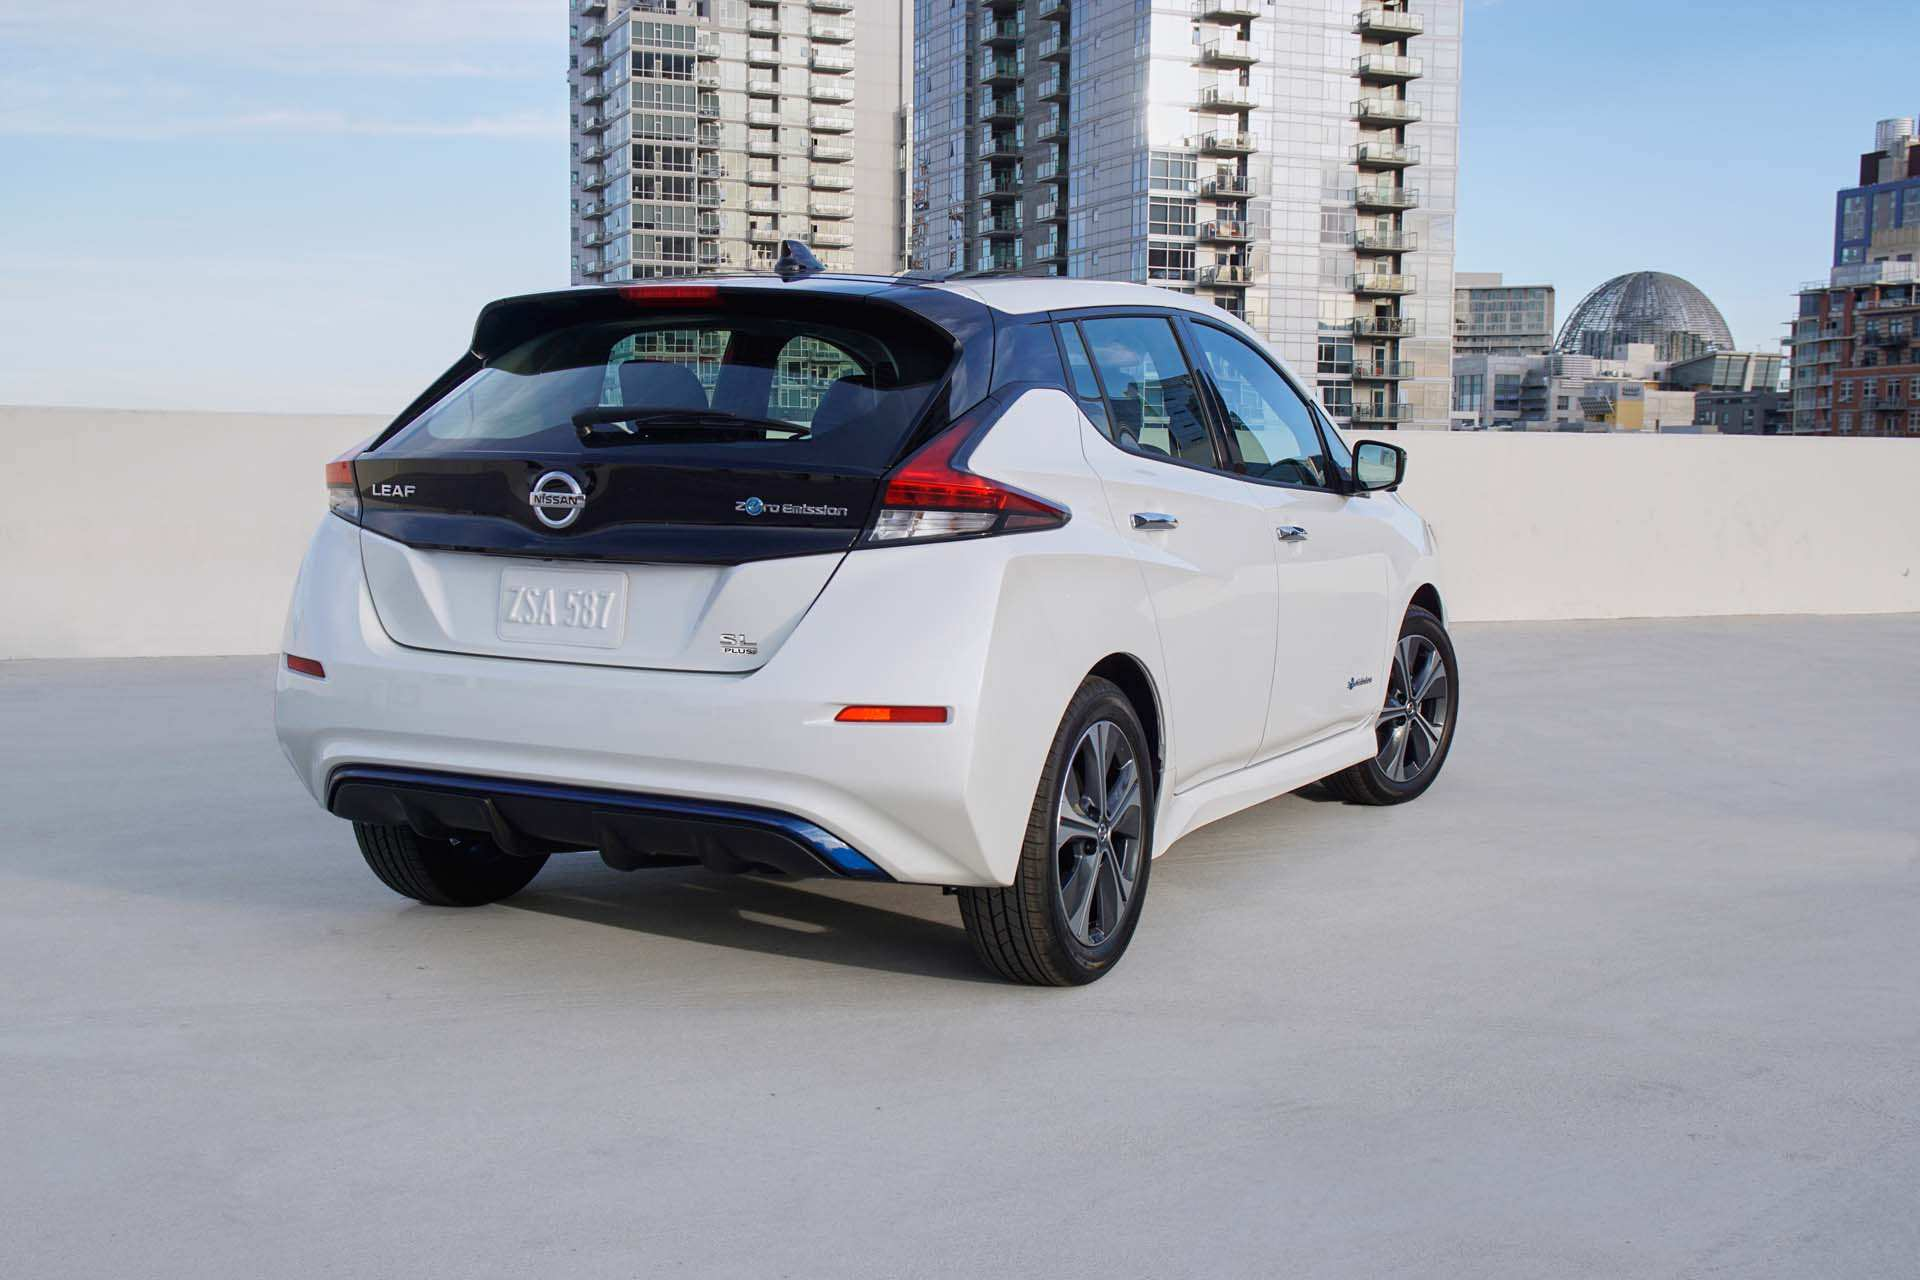 95 A Nissan Leaf Suv 2020 Pricing